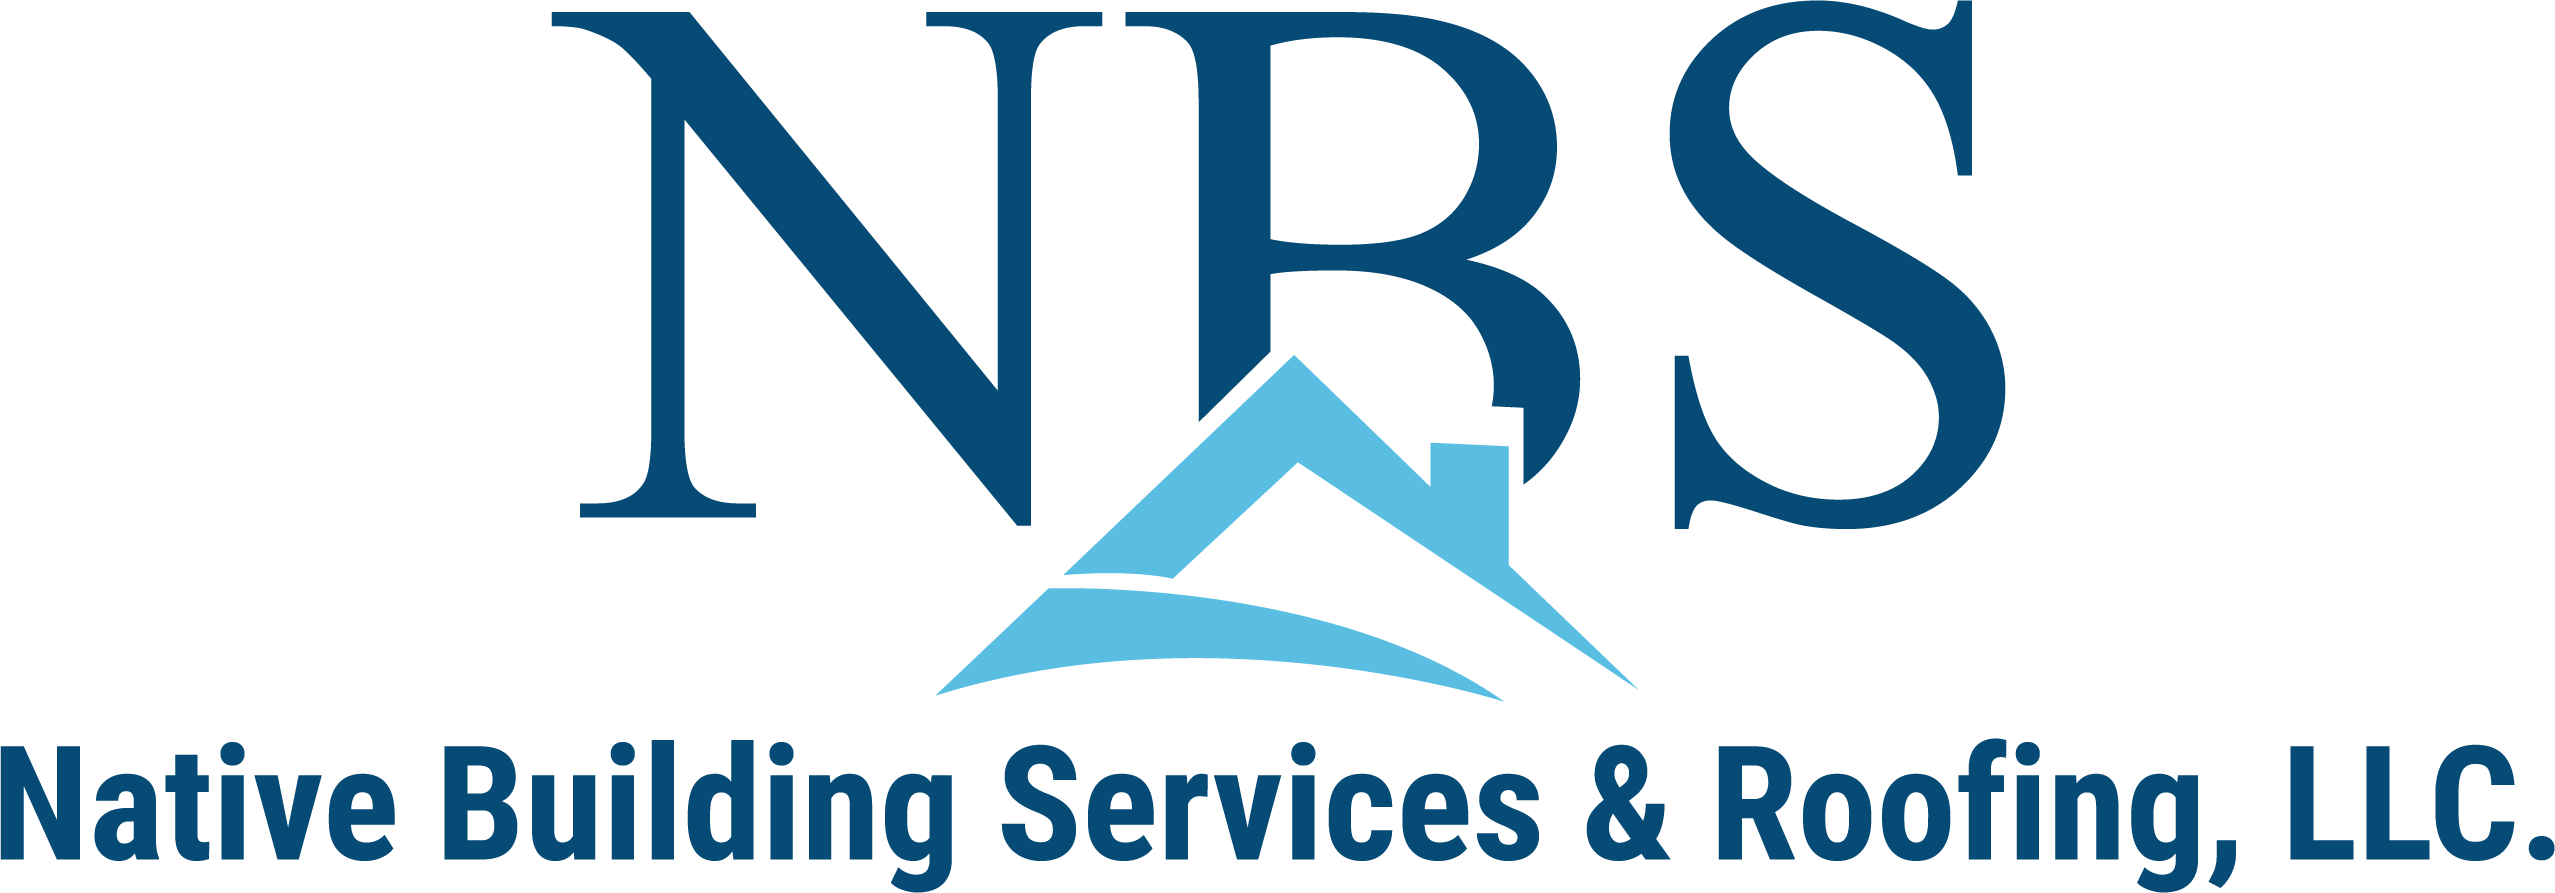 Native Building Services & Roofing logo